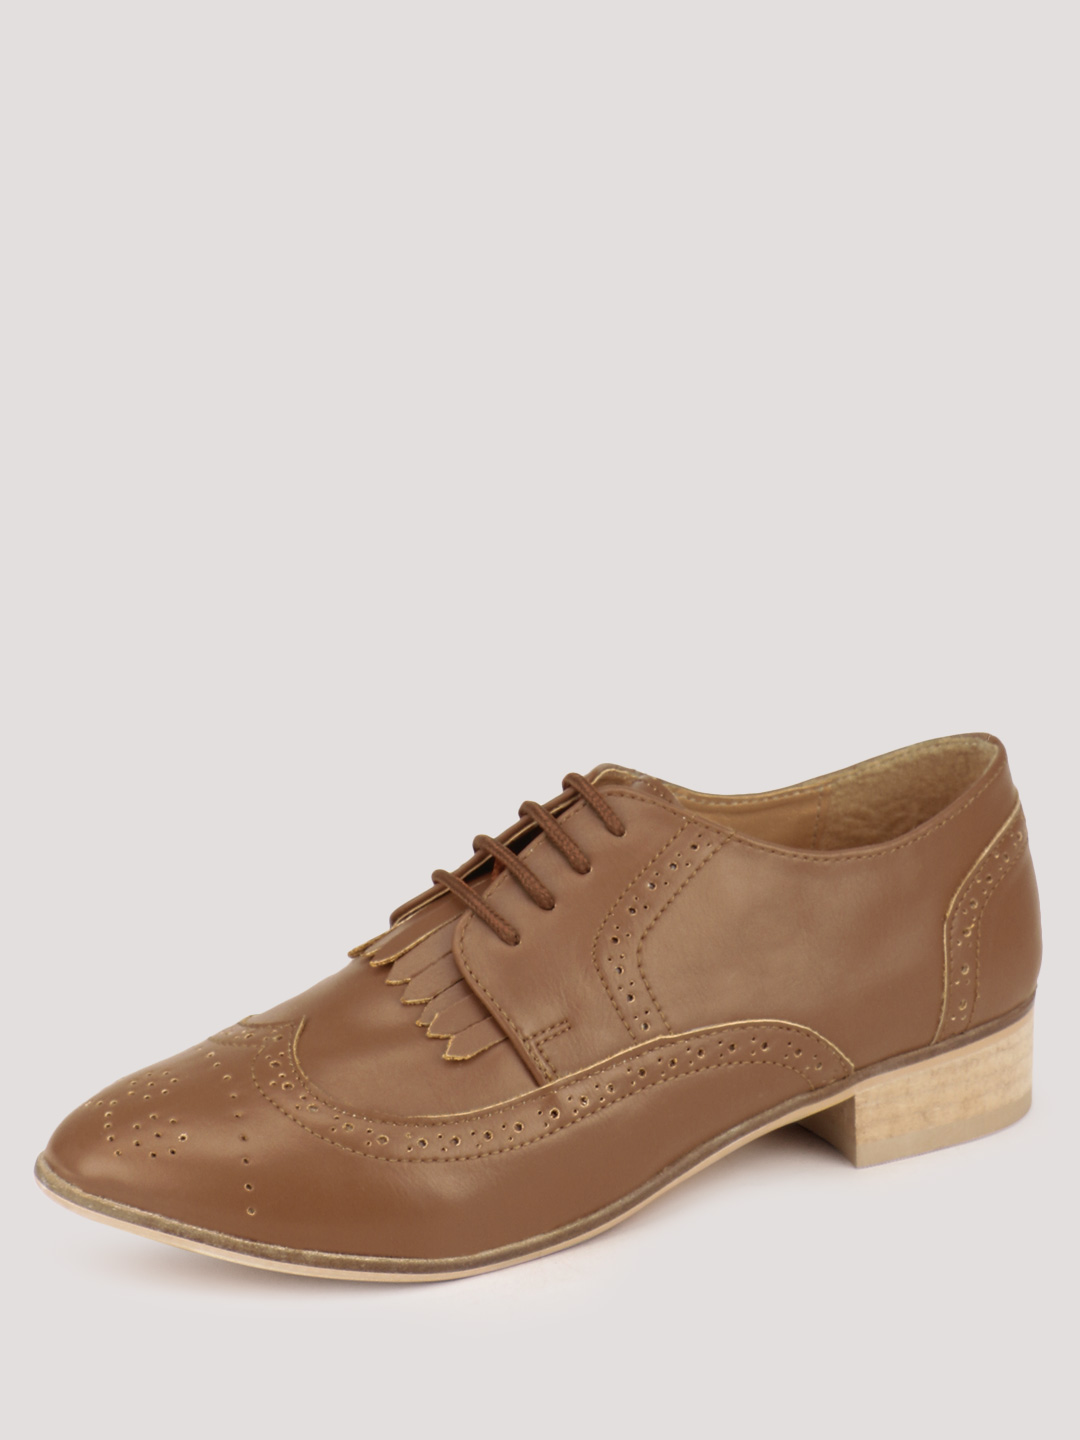 INARA Tan Brogues With Kiltie Fringe 1